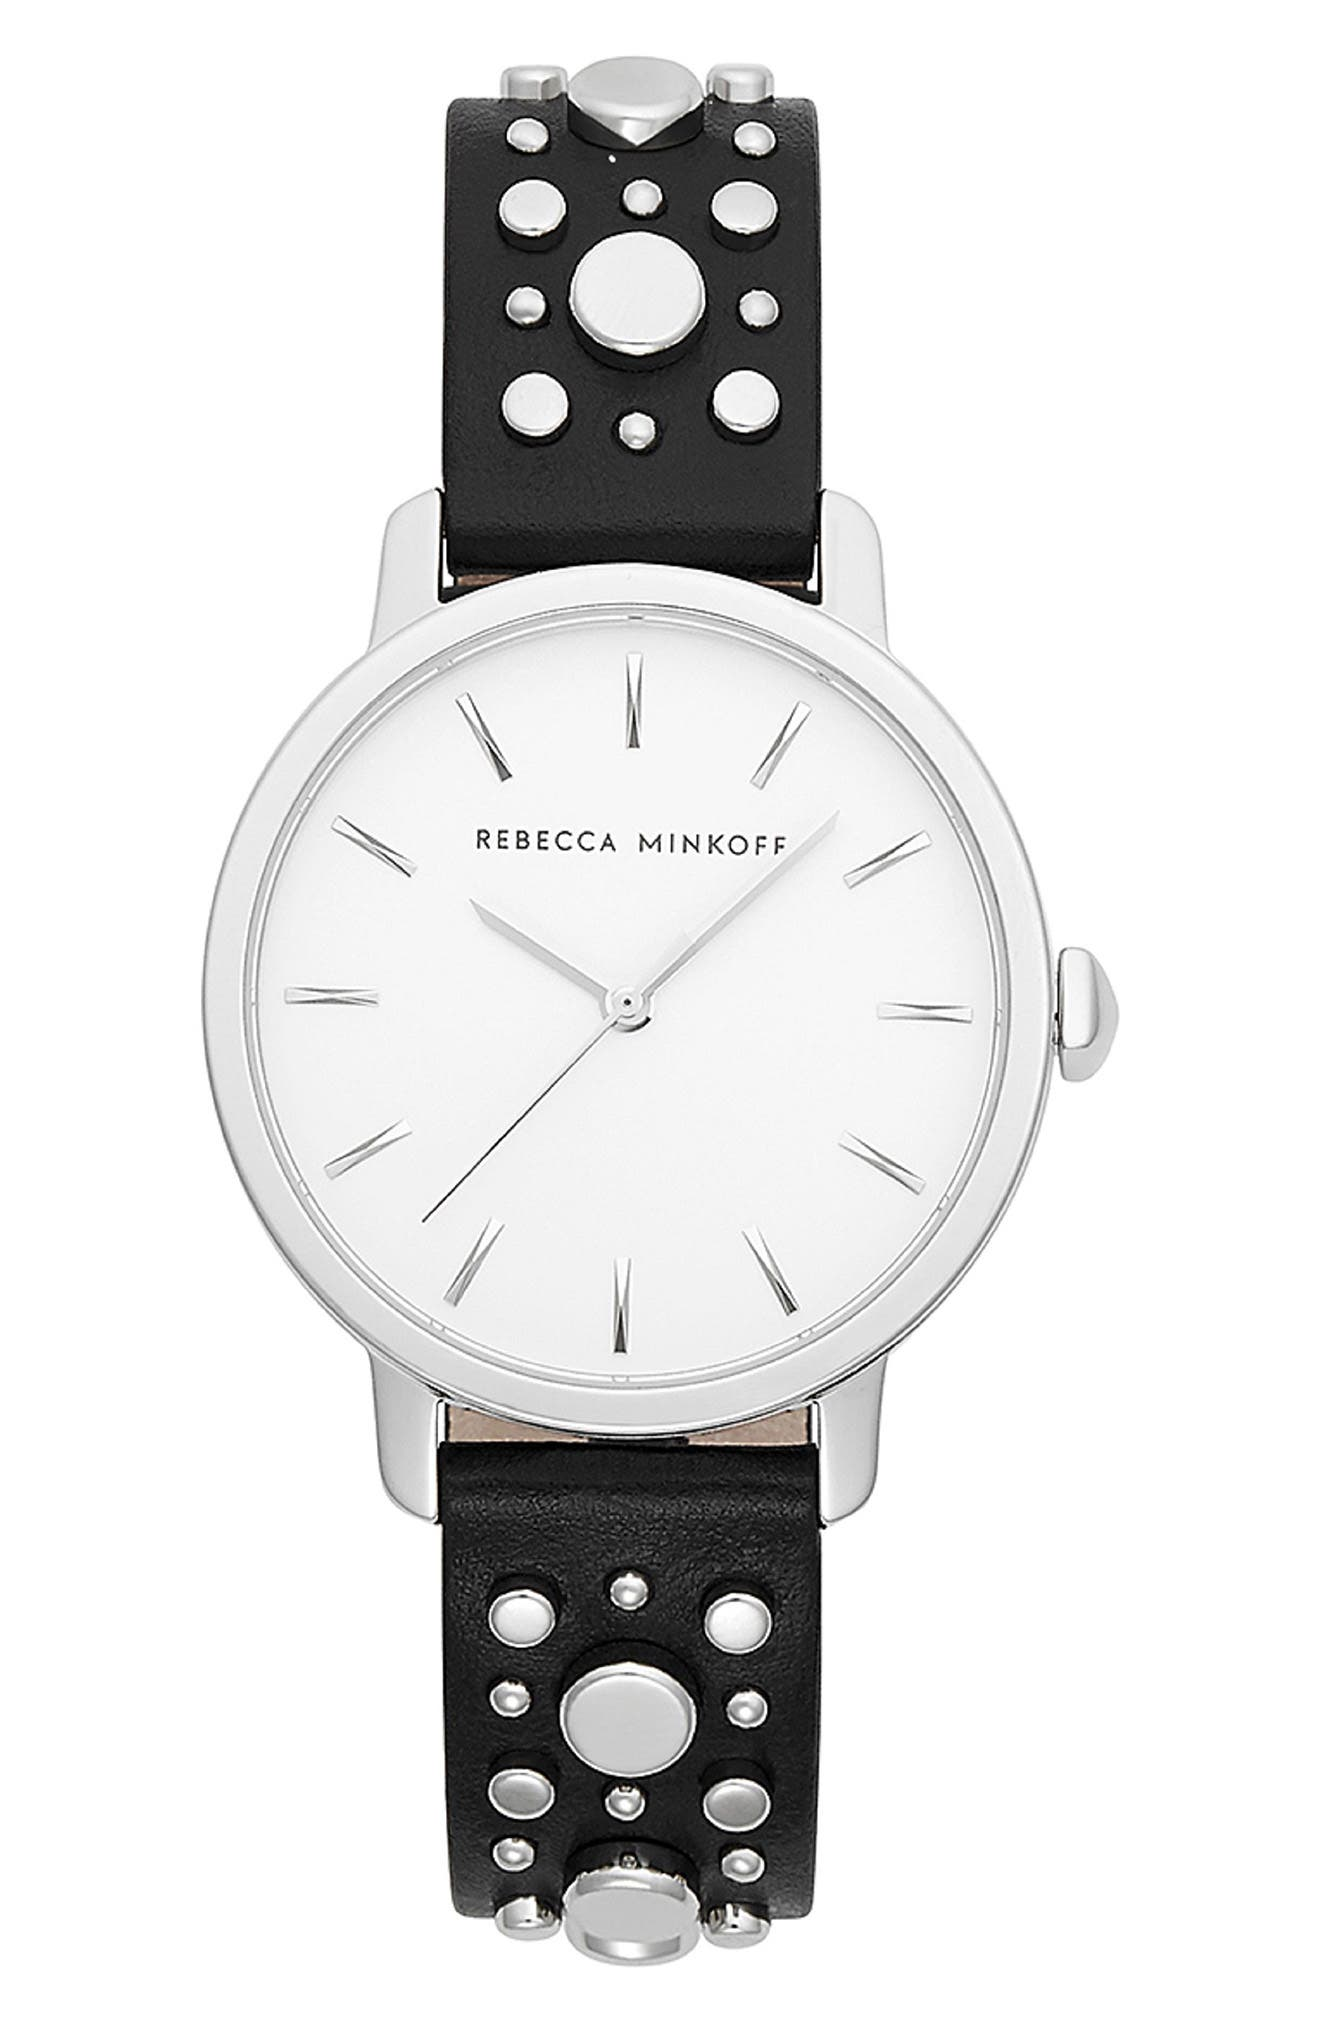 REBECCA MINKOFF,                             BFFL Studded Leather Strap Watch, 36mm,                             Main thumbnail 1, color,                             BLACK/ SILVER WHITE/ SILVER